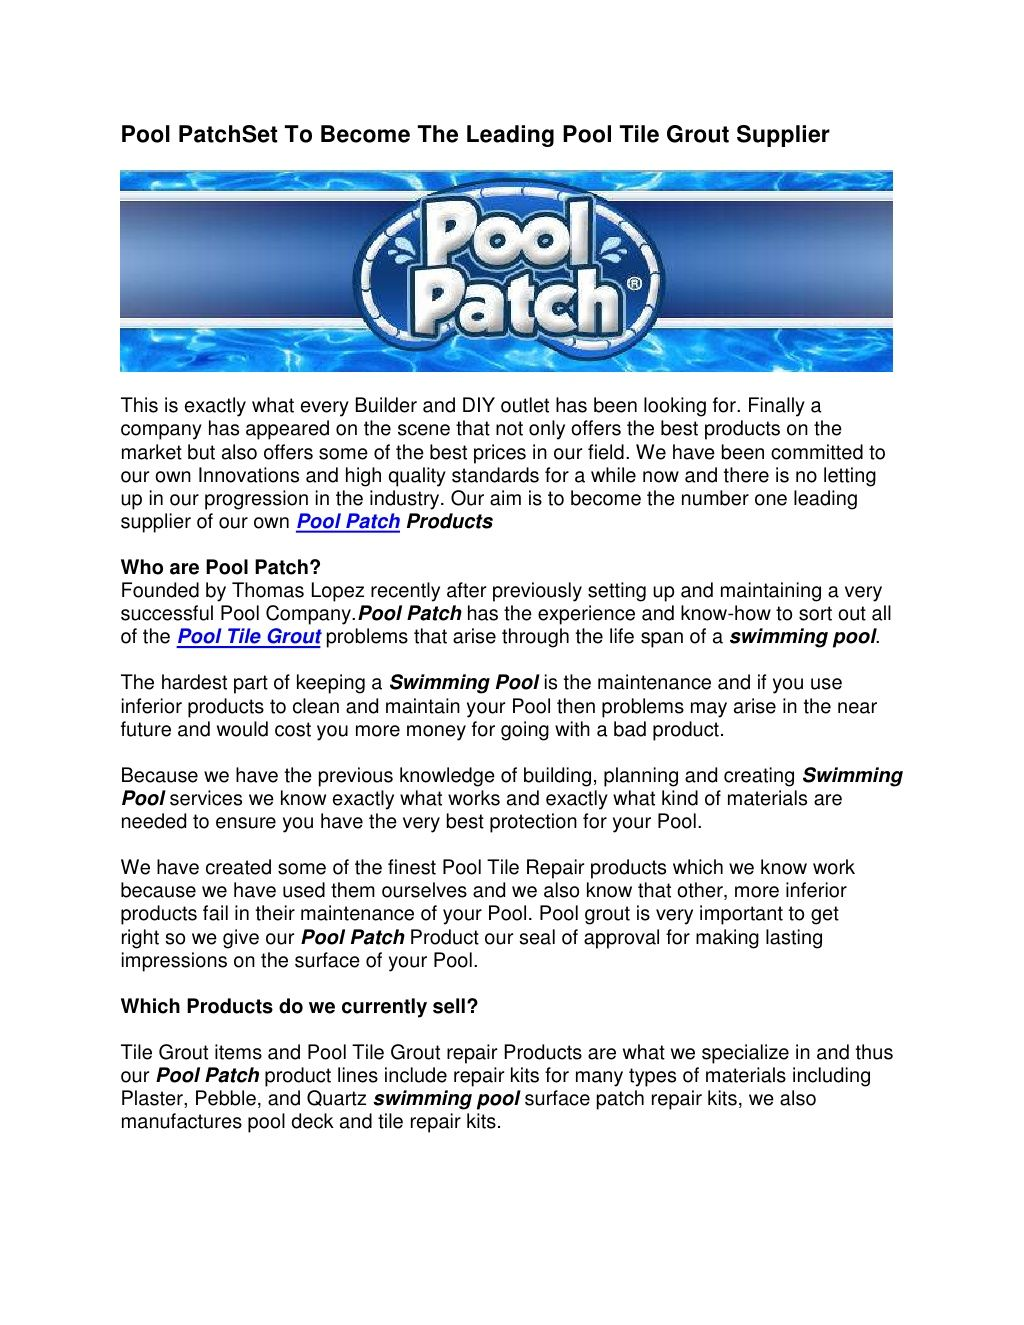 Pool Patch Set To Become The Leading Pool Tile Grout Supplier | pool ...